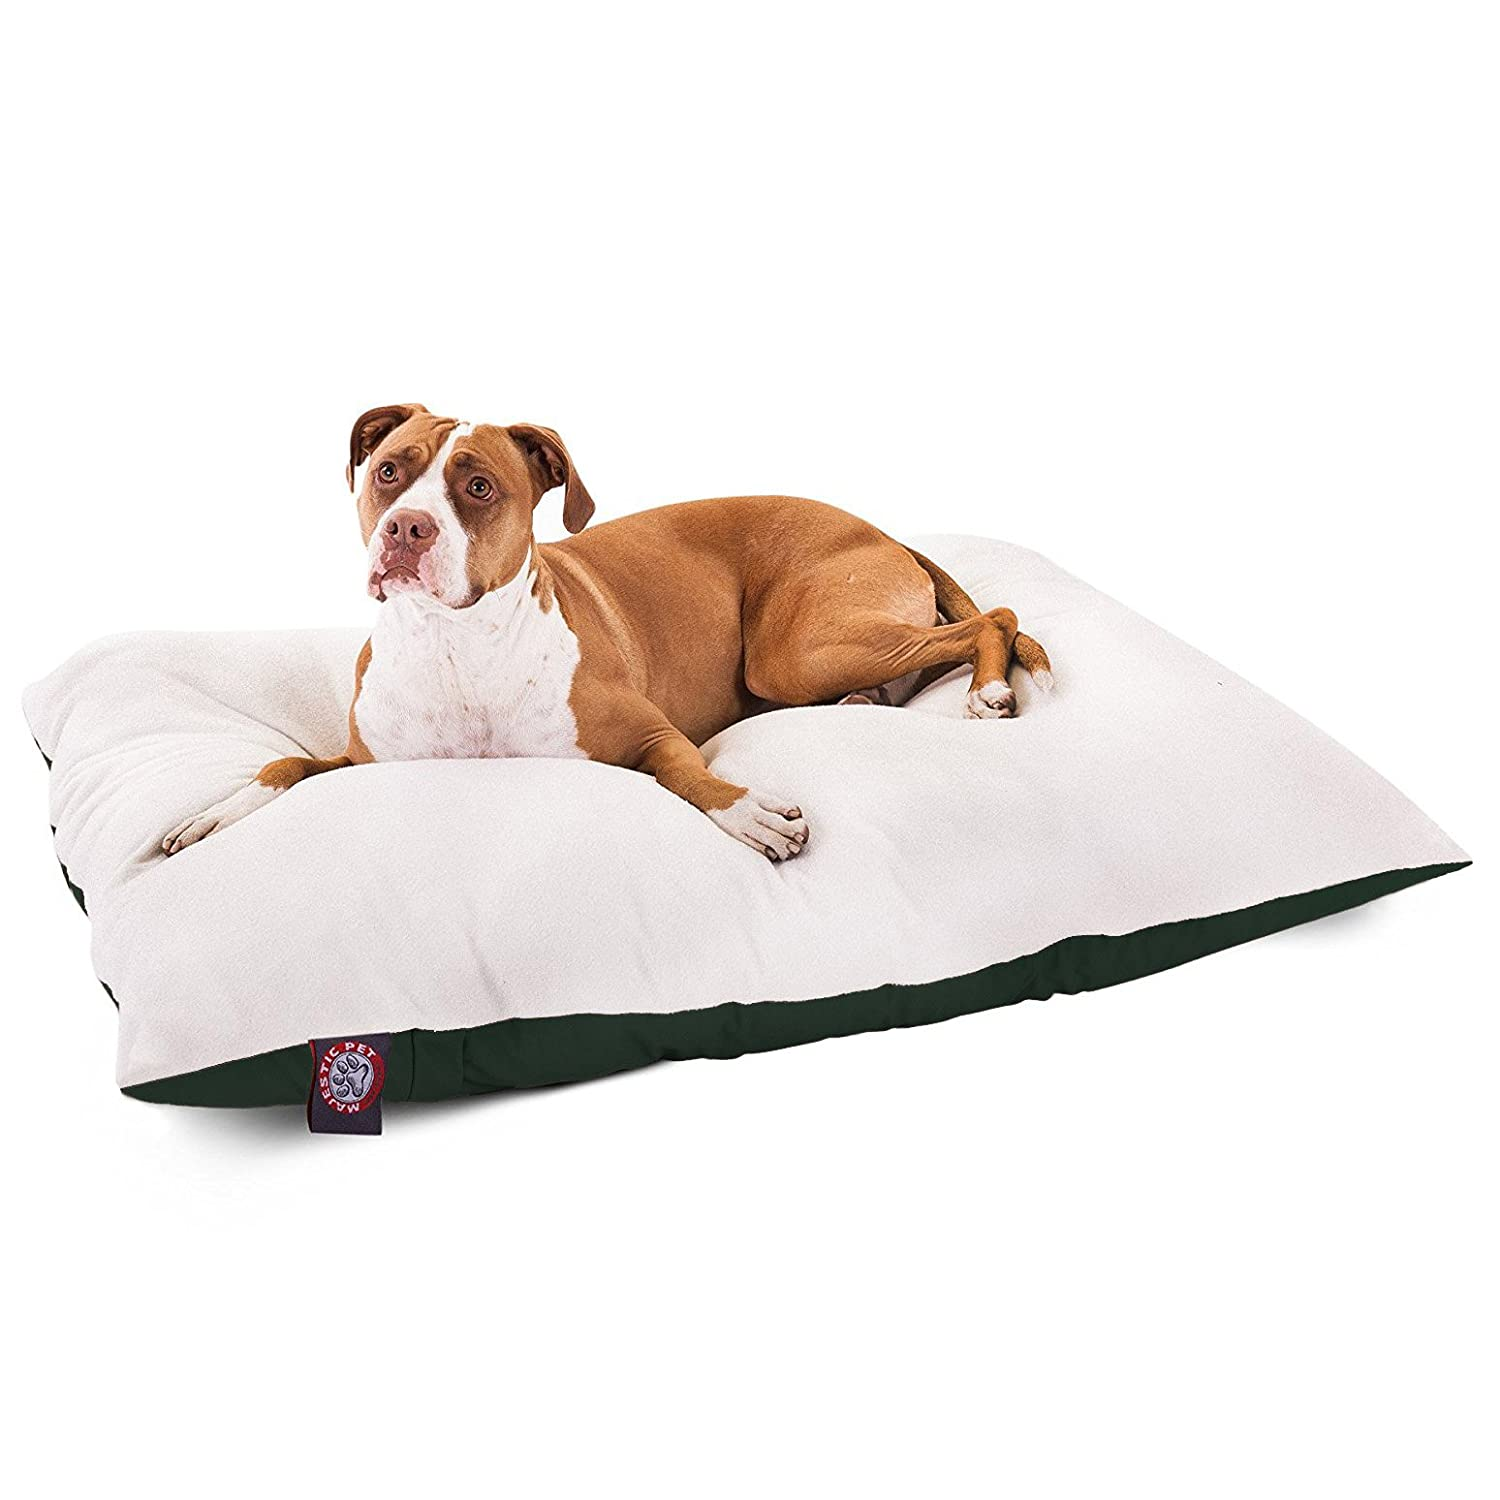 36x48 Green Rectangle Pet Dog Bed by Majestic Pet Products Large